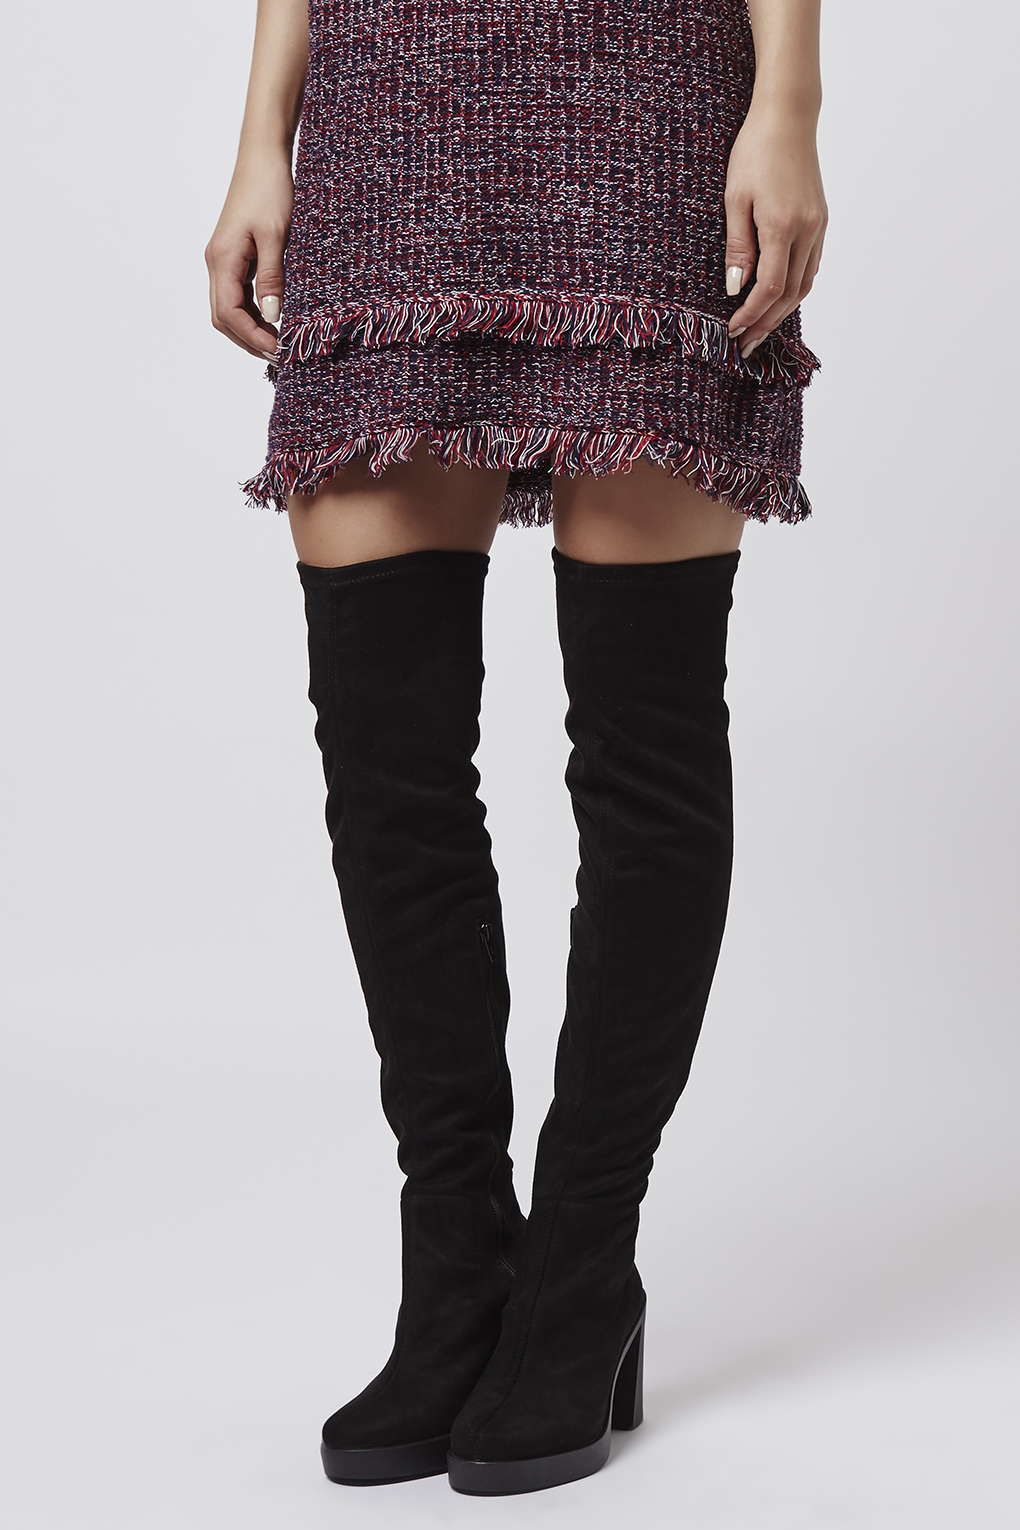 BARI Stretch Over The Knee Boots | Topshop Bari and The o&39jays